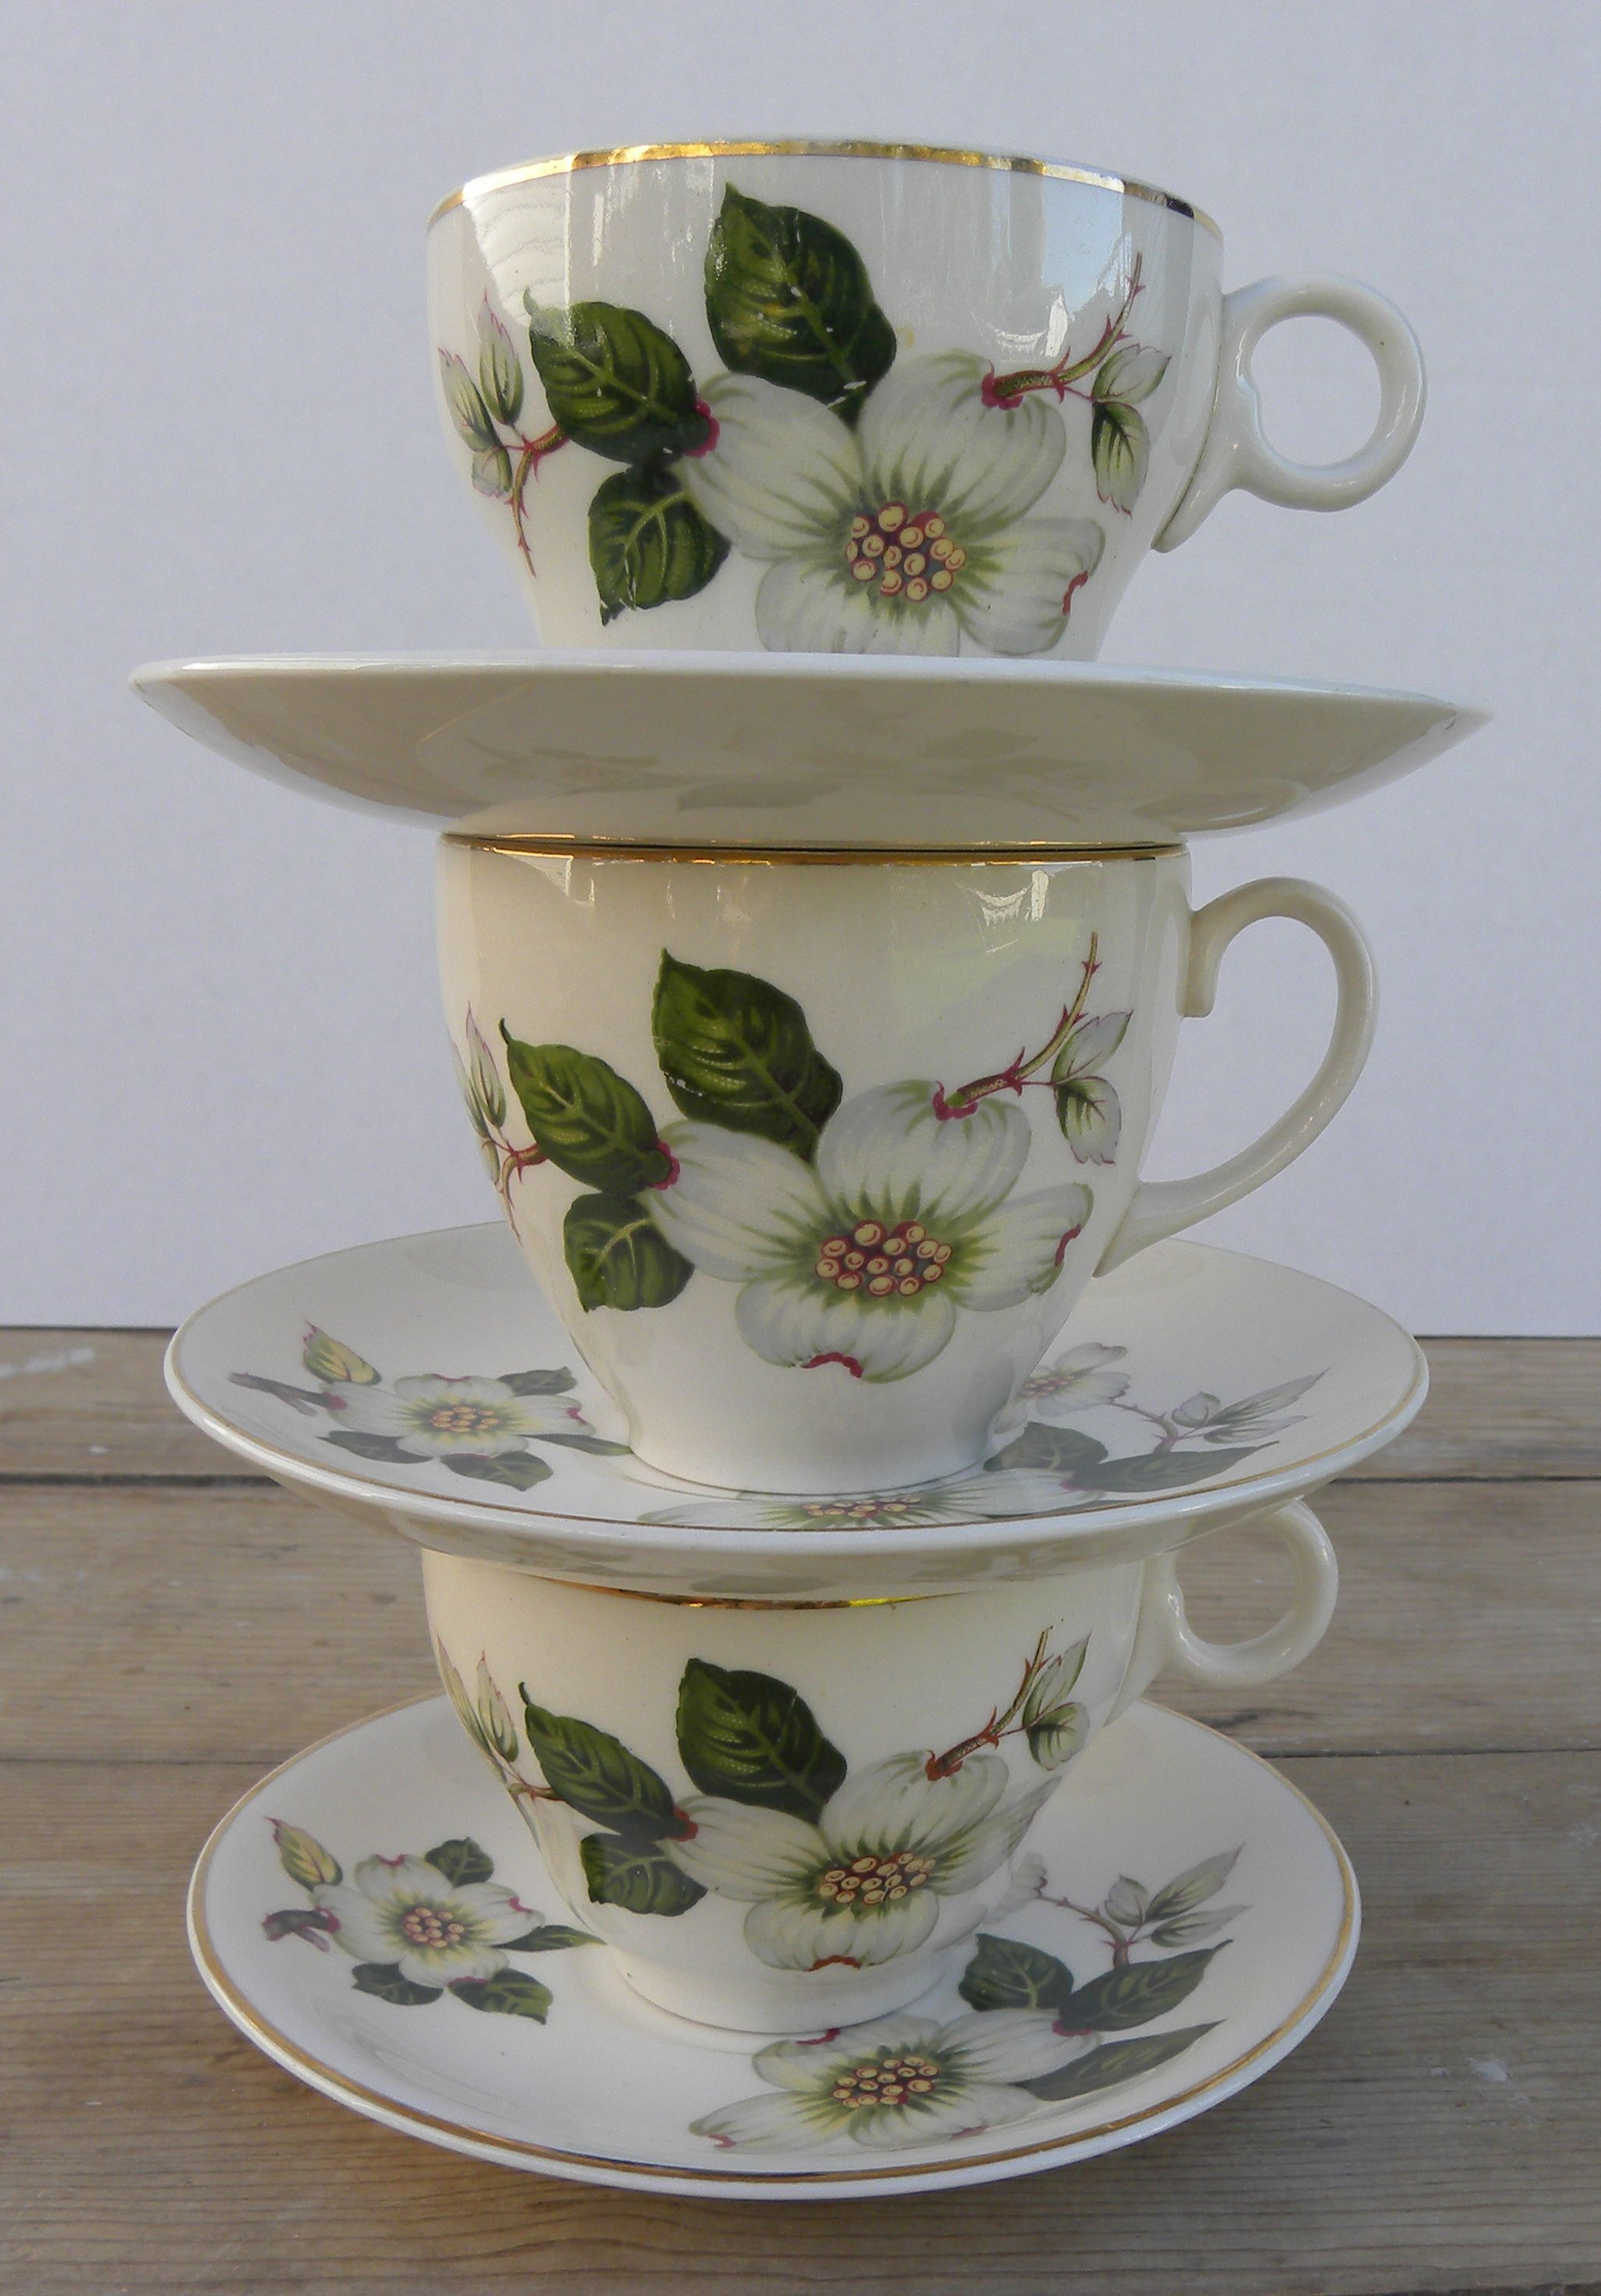 Lovely Dogwood tea cups, find on Etsy, The DH Collection